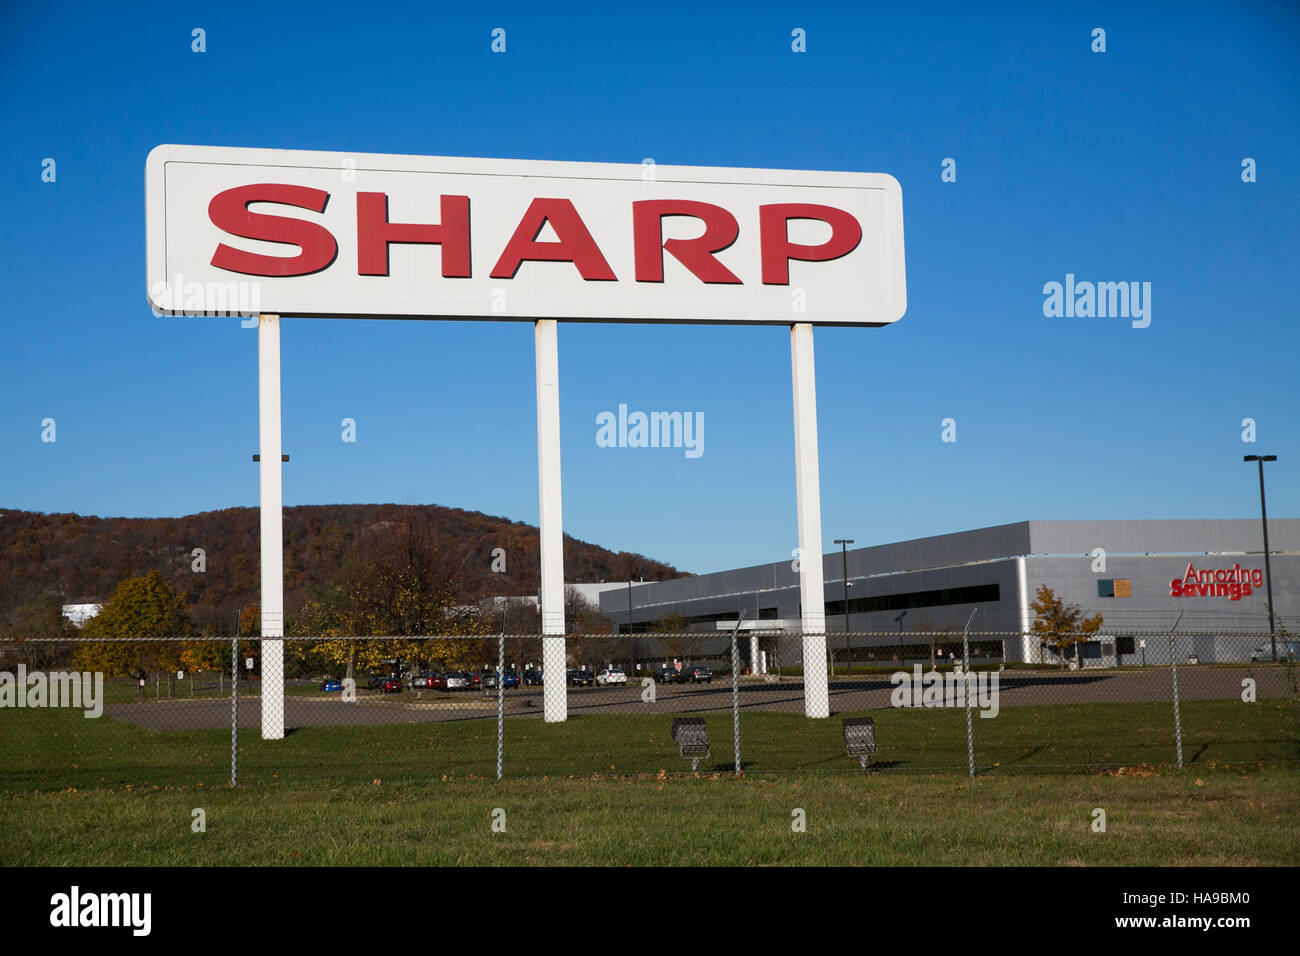 sharp corporation essay View/download income statement for sharp corporation (adr) (shcay) showing sharp corporation adr annual revenue, sales, profits and more for 2017, 2016.